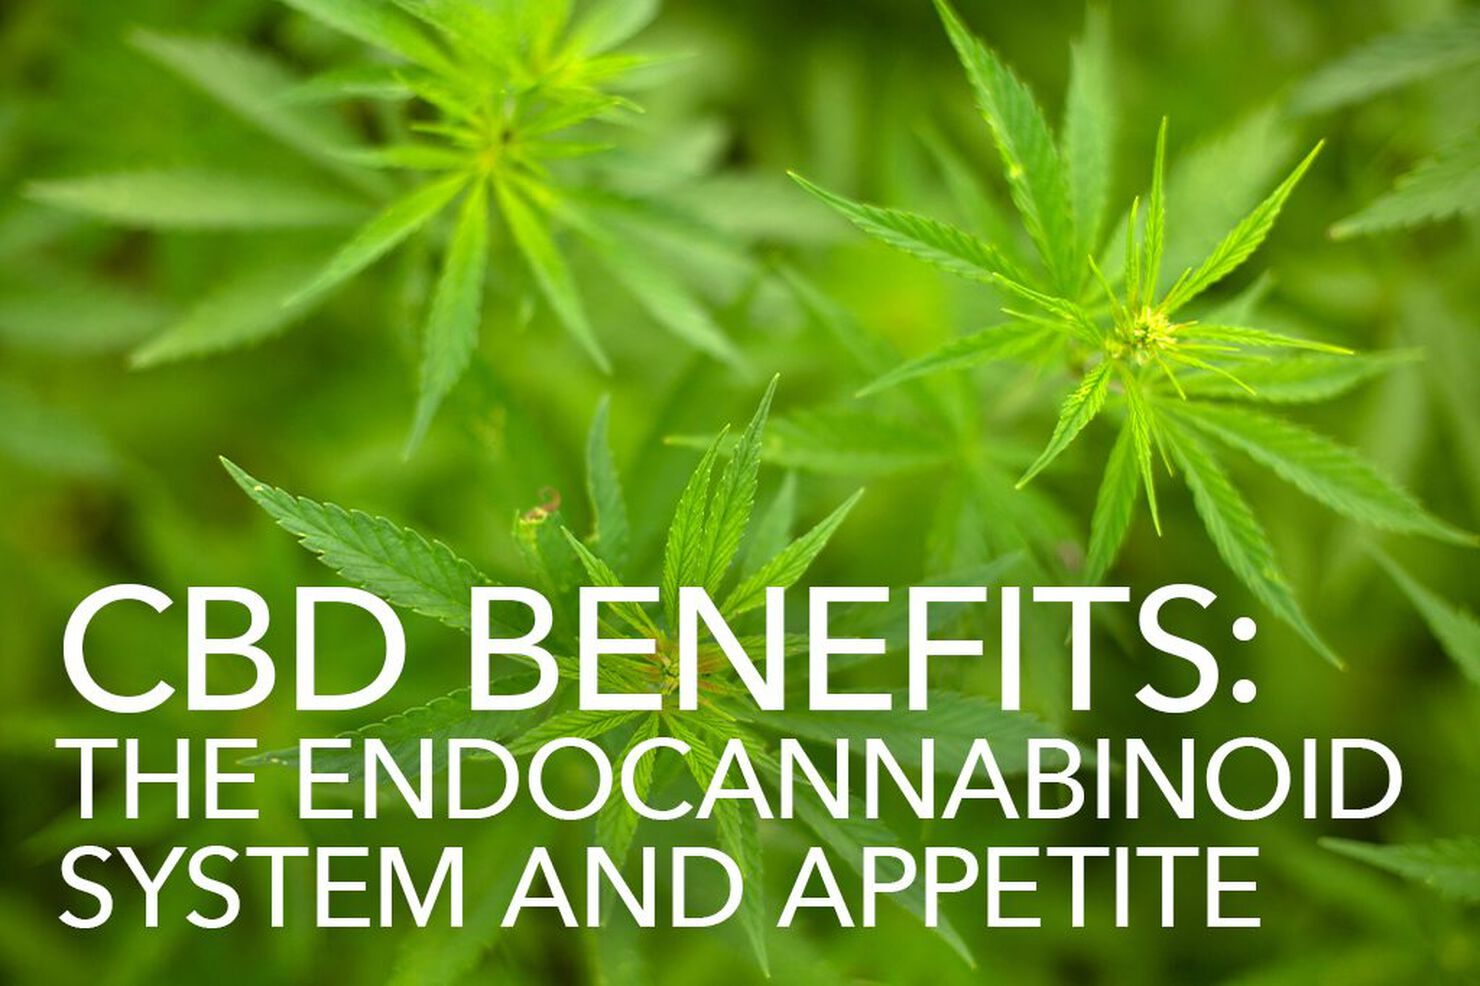 CBD Benefits: The Endocannabinoid System and Appetite